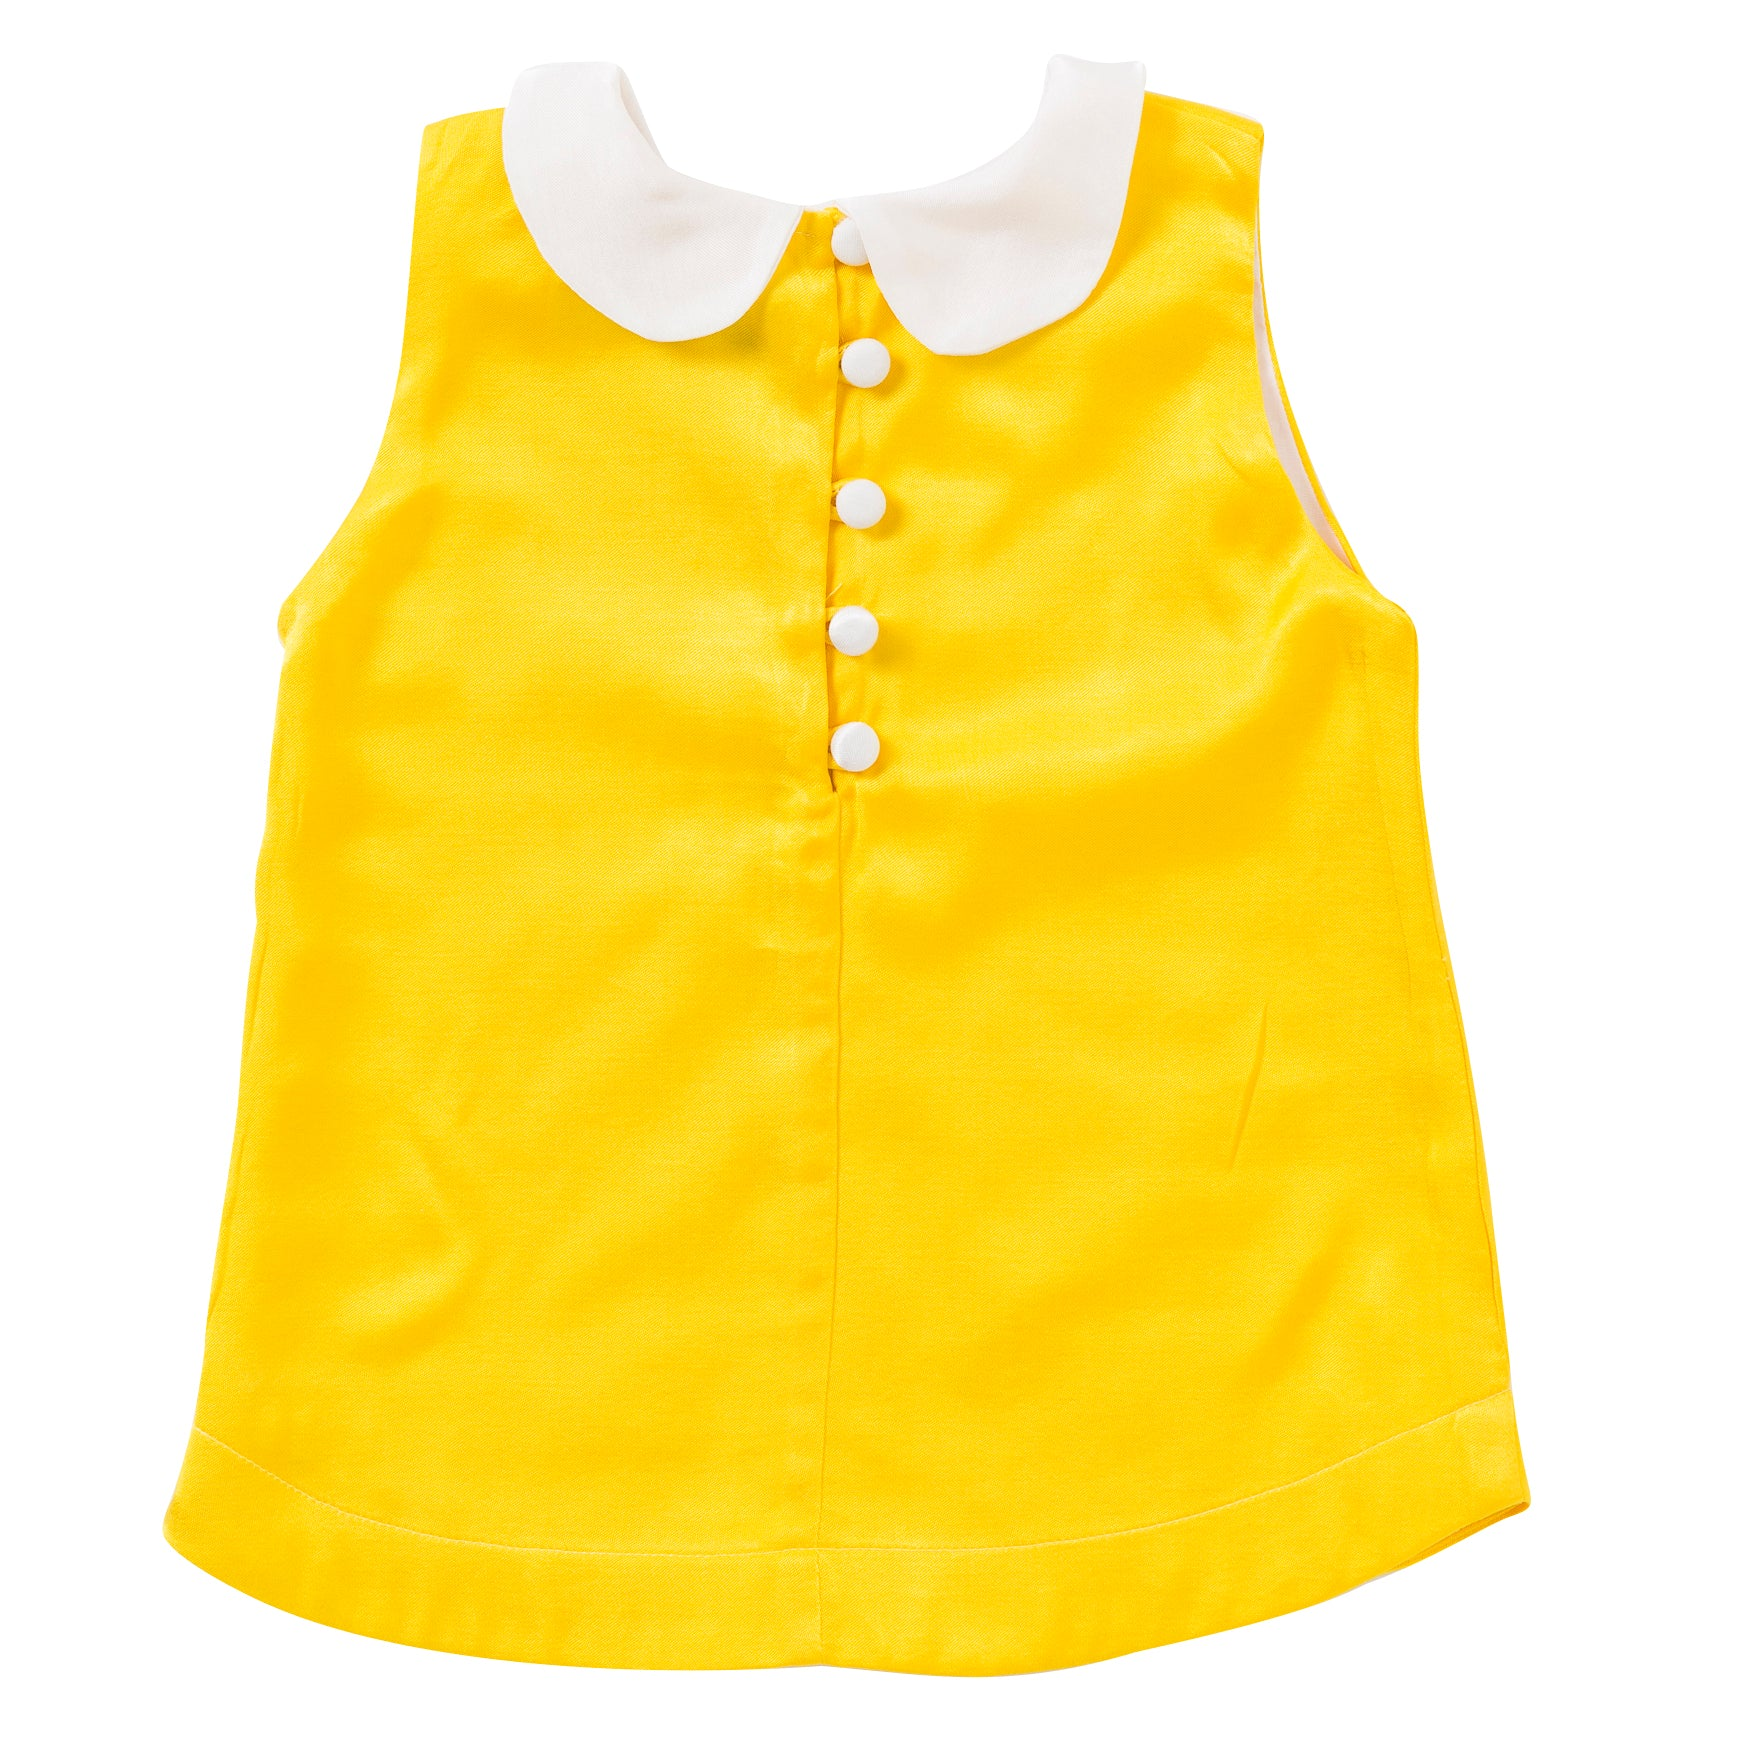 Peter Pan Top in Yellow